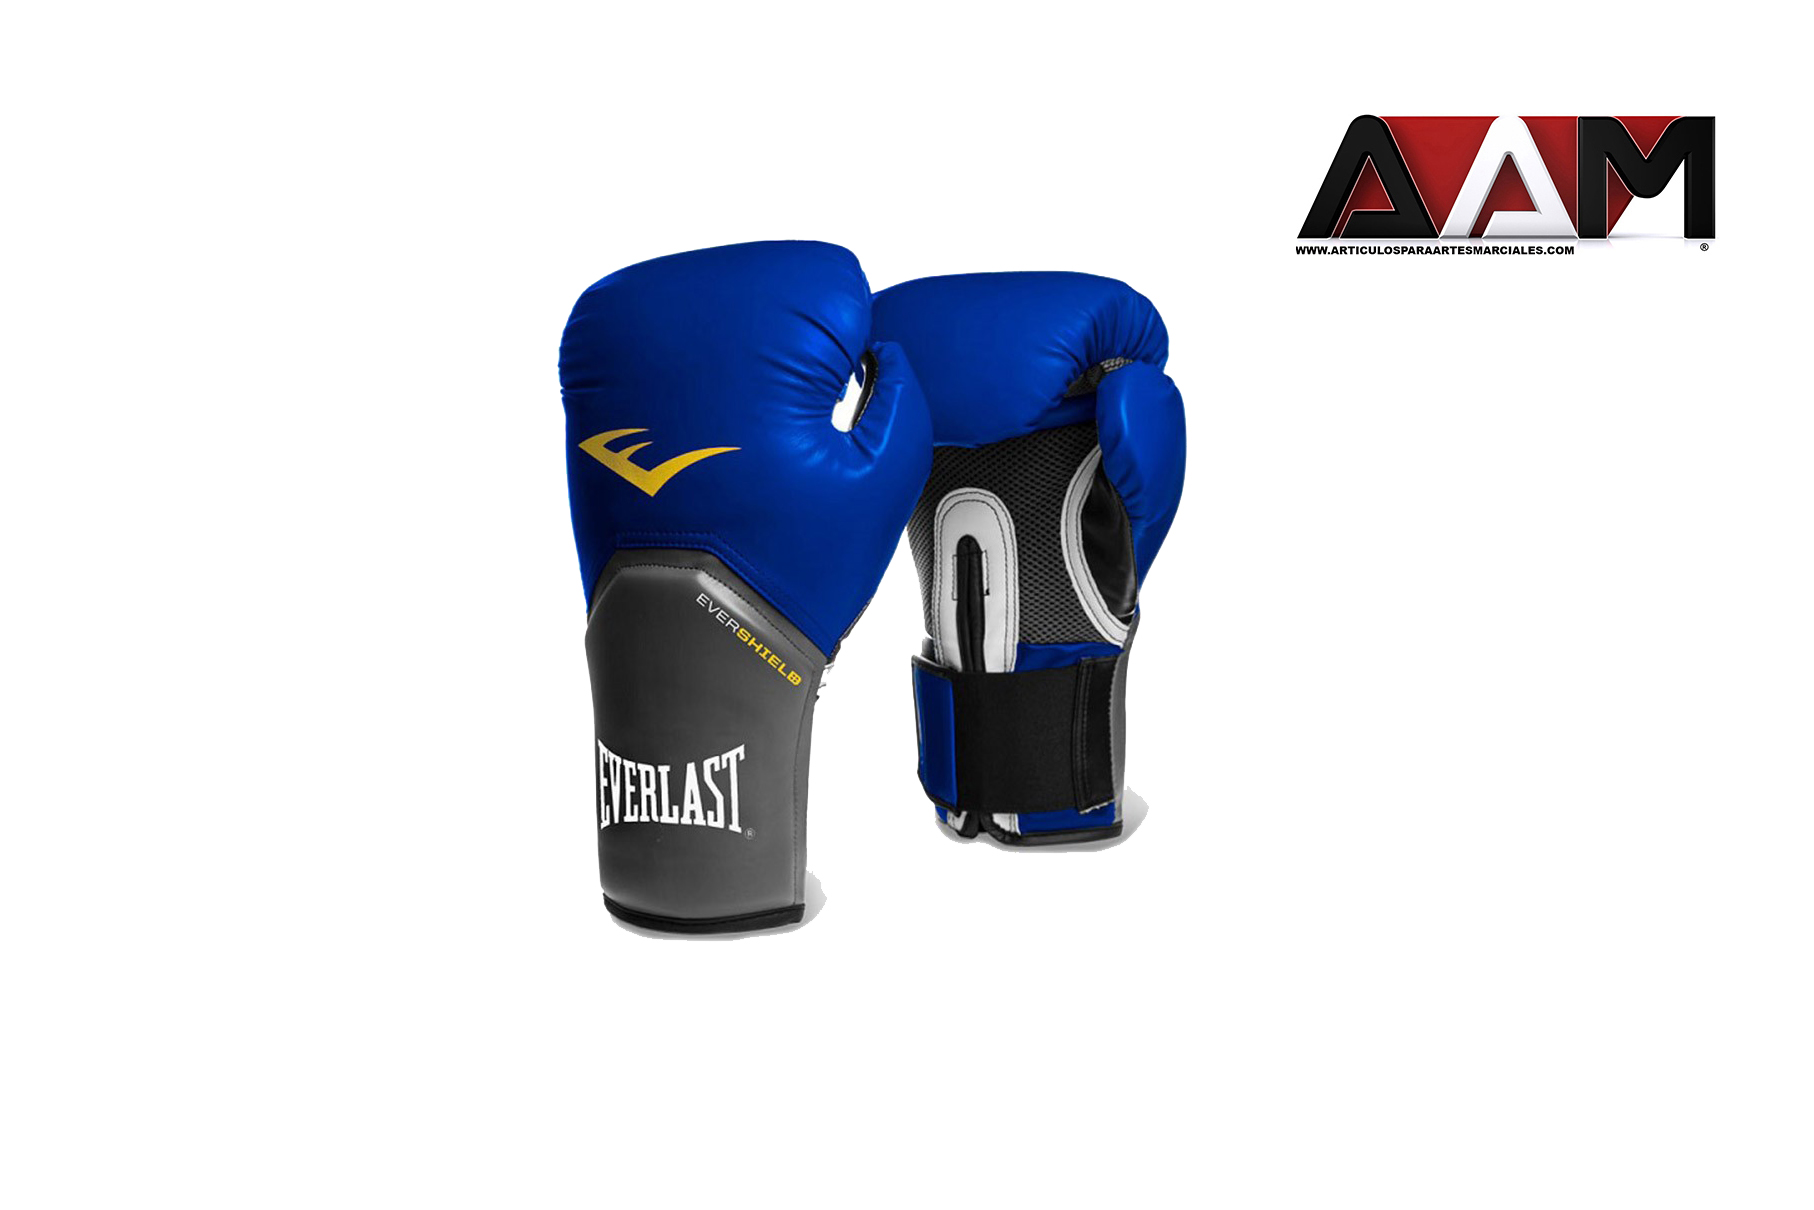 Guantes Everlast evershield 8 oz